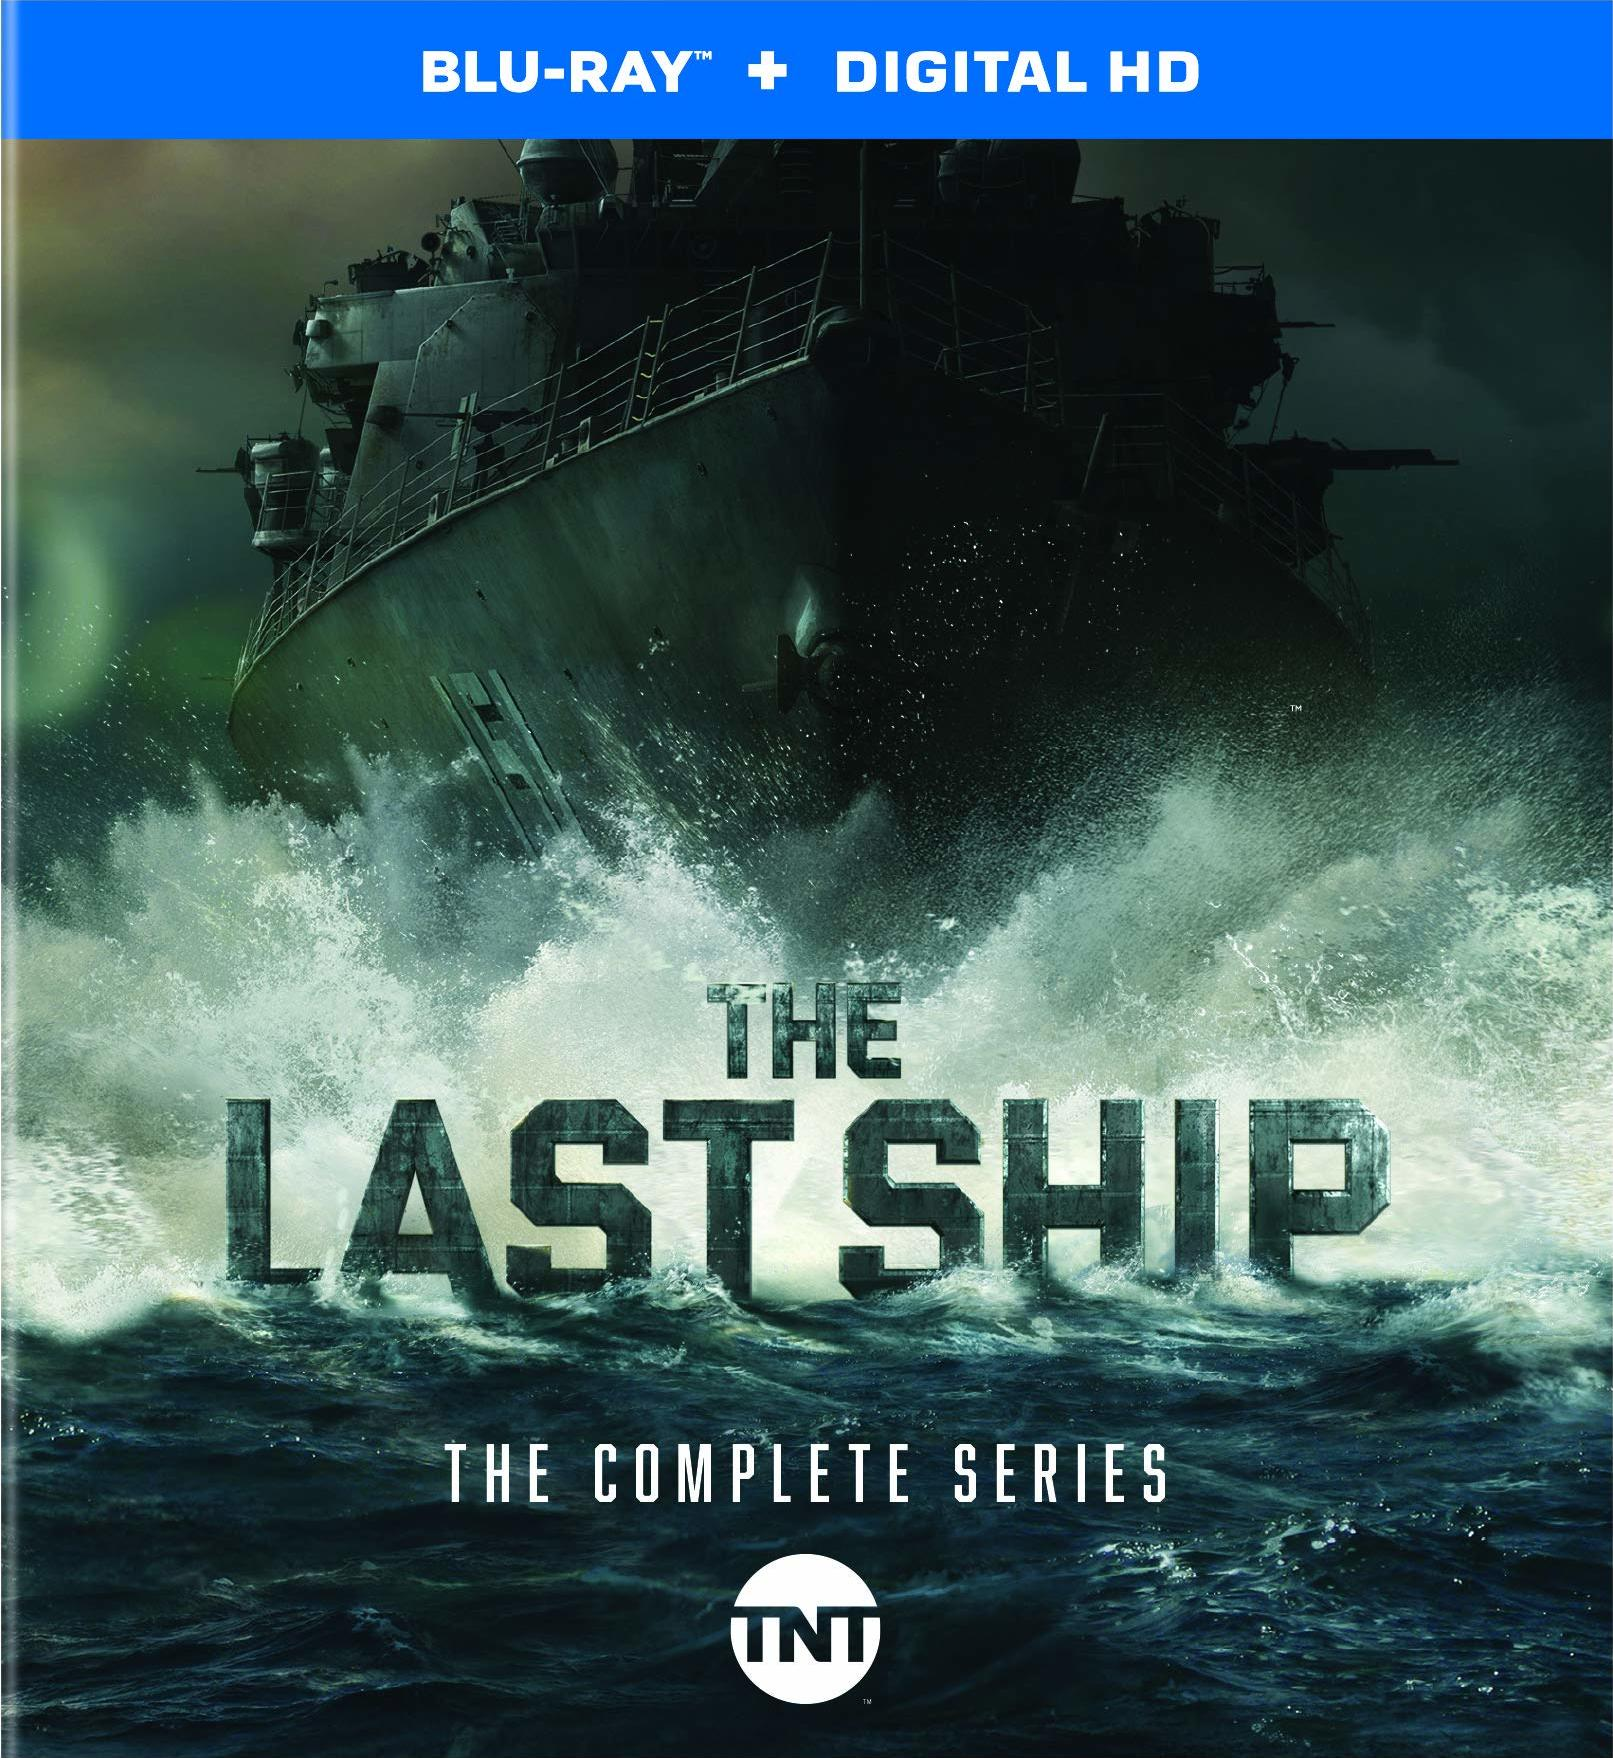 The Last Ship: The Complete Series (Blu-ray)(Region Free)(Pre-order / Mar 12)